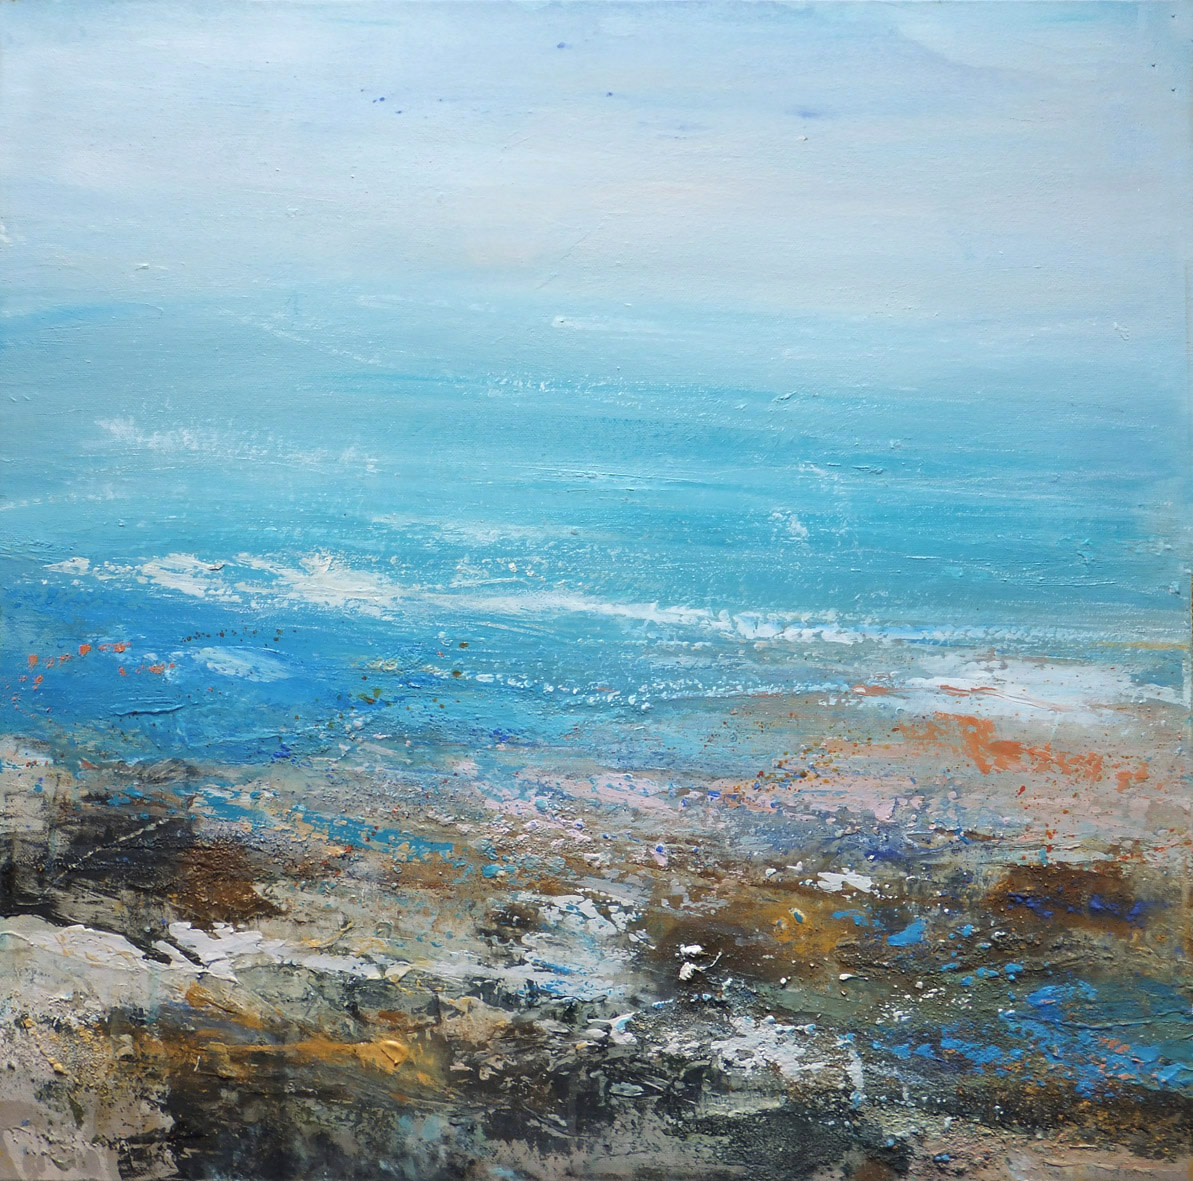 "<span class=""link fancybox-details-link""><a href=""/artists/66-joanne-last/works/6356-joanne-last-remembering-rock-pools-1-2019/"">View Detail Page</a></span><div class=""artist""><strong>Joanne Last</strong></div> <div class=""title""><em>Remembering Rock Pools 1</em>, 2019</div> <div class=""signed_and_dated"">Signed and dated on the reverse</div> <div class=""medium"">Mixed media on canvas</div> <div class=""dimensions"">60 x 60cm</div><div class=""price"">£900.00</div><div class=""copyright_line"">Own Art £90 x 10months, 0% APR</div>"